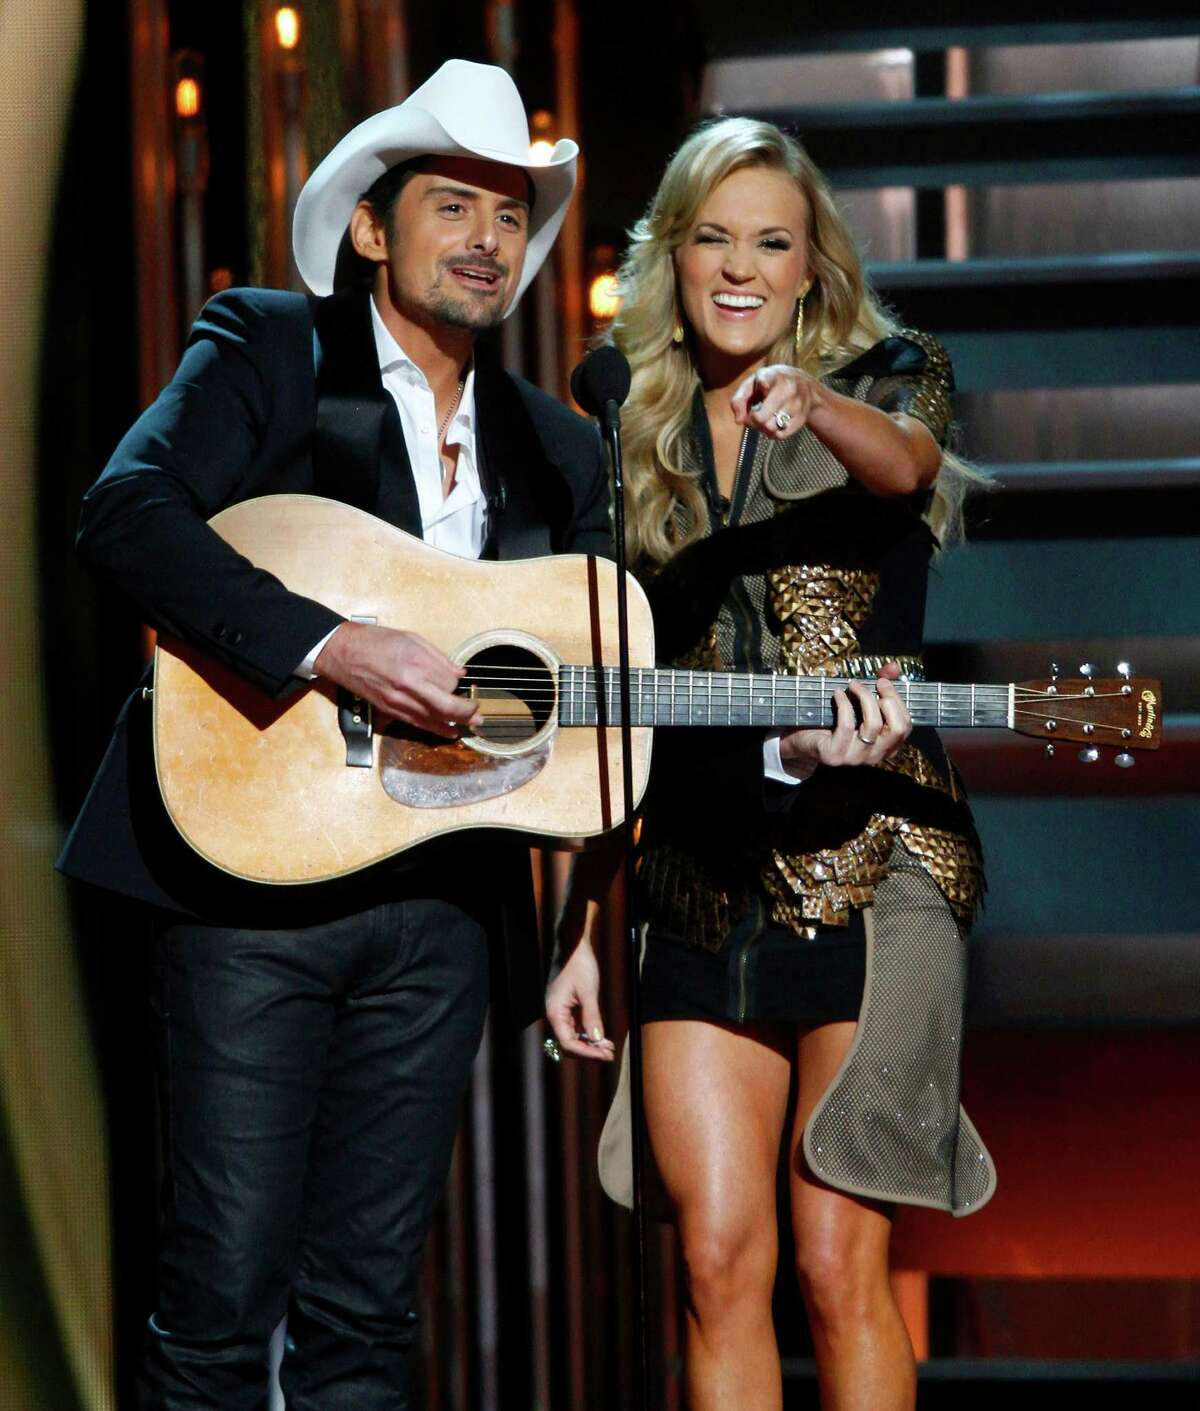 Co-hosts Brad Paisley, left, and Carrie Underwood perform at the 47th annual CMA Awards at Bridgestone Arena on Wednesday, Nov. 6, 2013, in Nashville, Tenn. (Photo by Wade Payne/Invision/AP) ORG XMIT: TNDC213